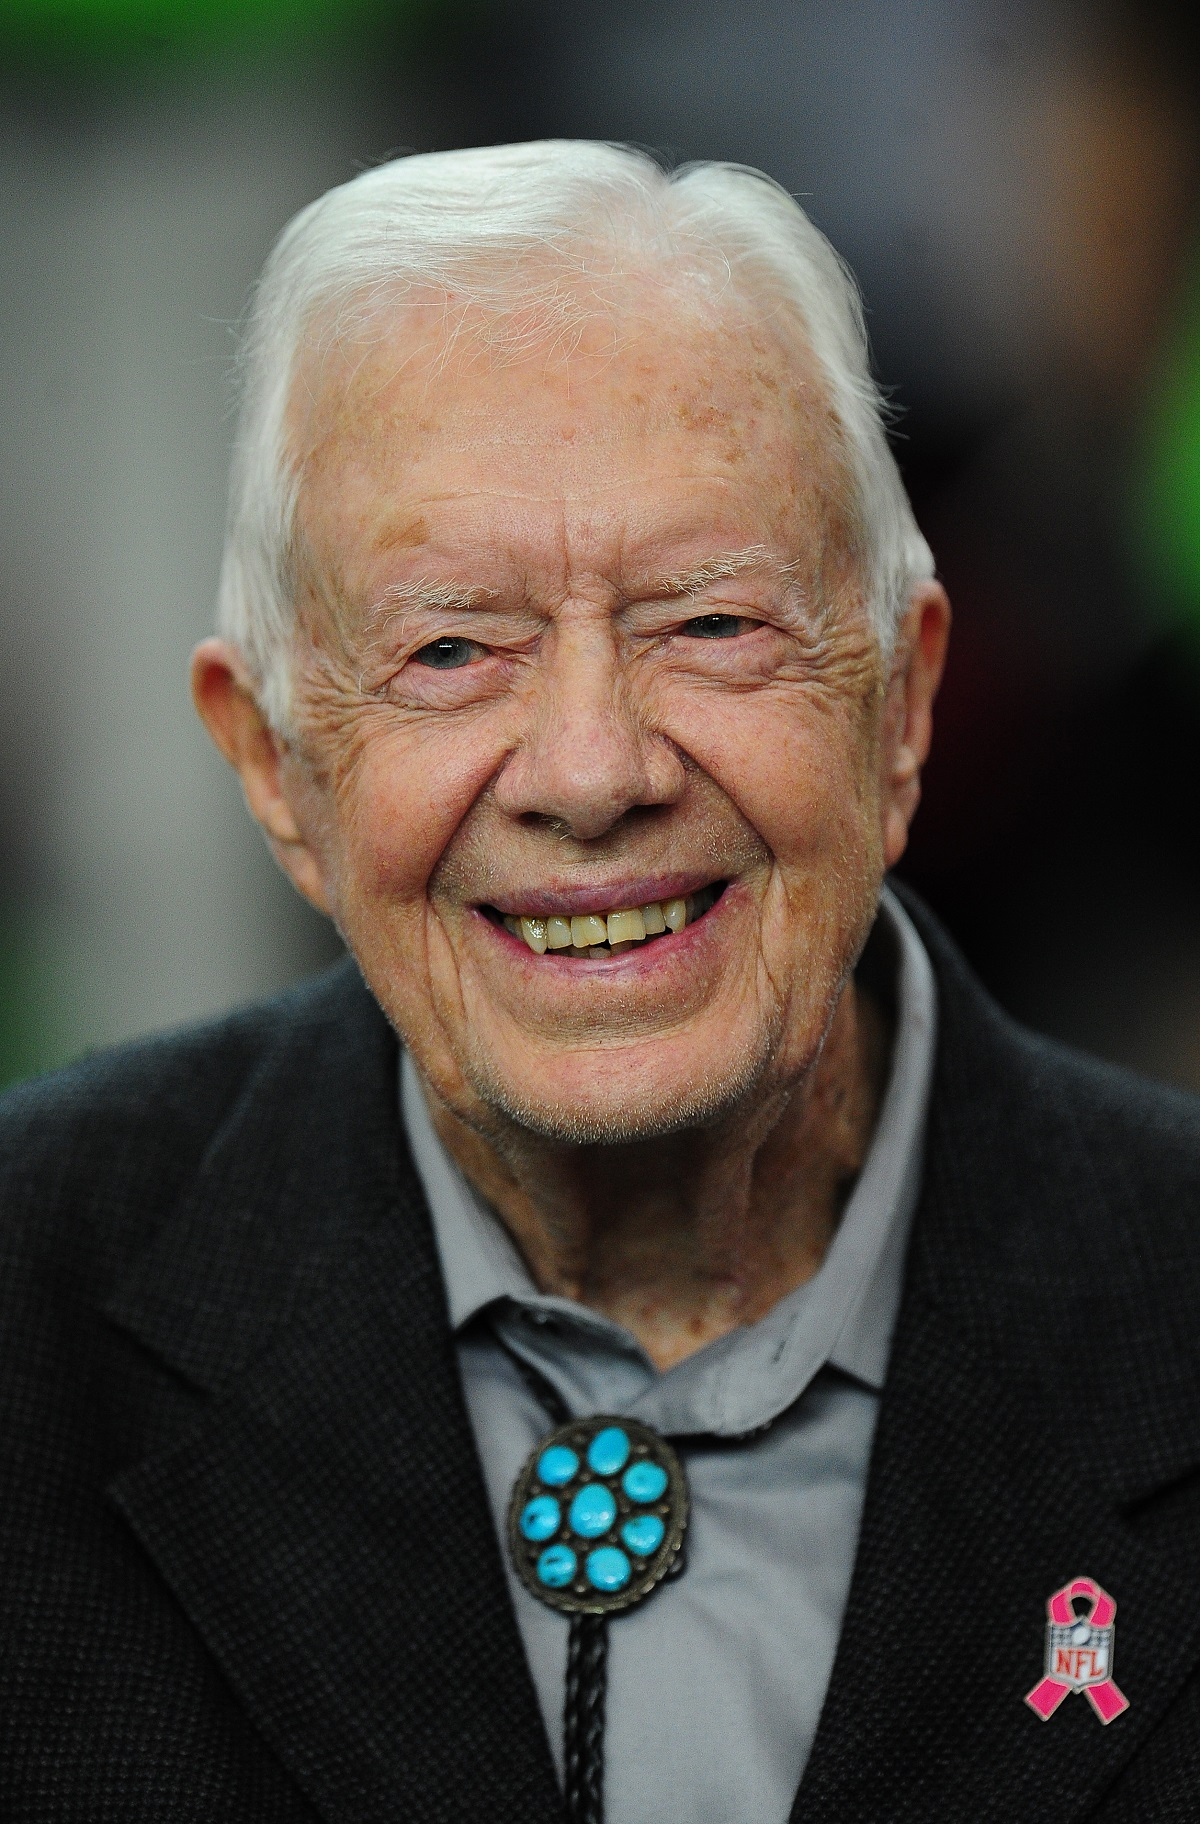 Jimmy Carter smiling at a football game in 2016